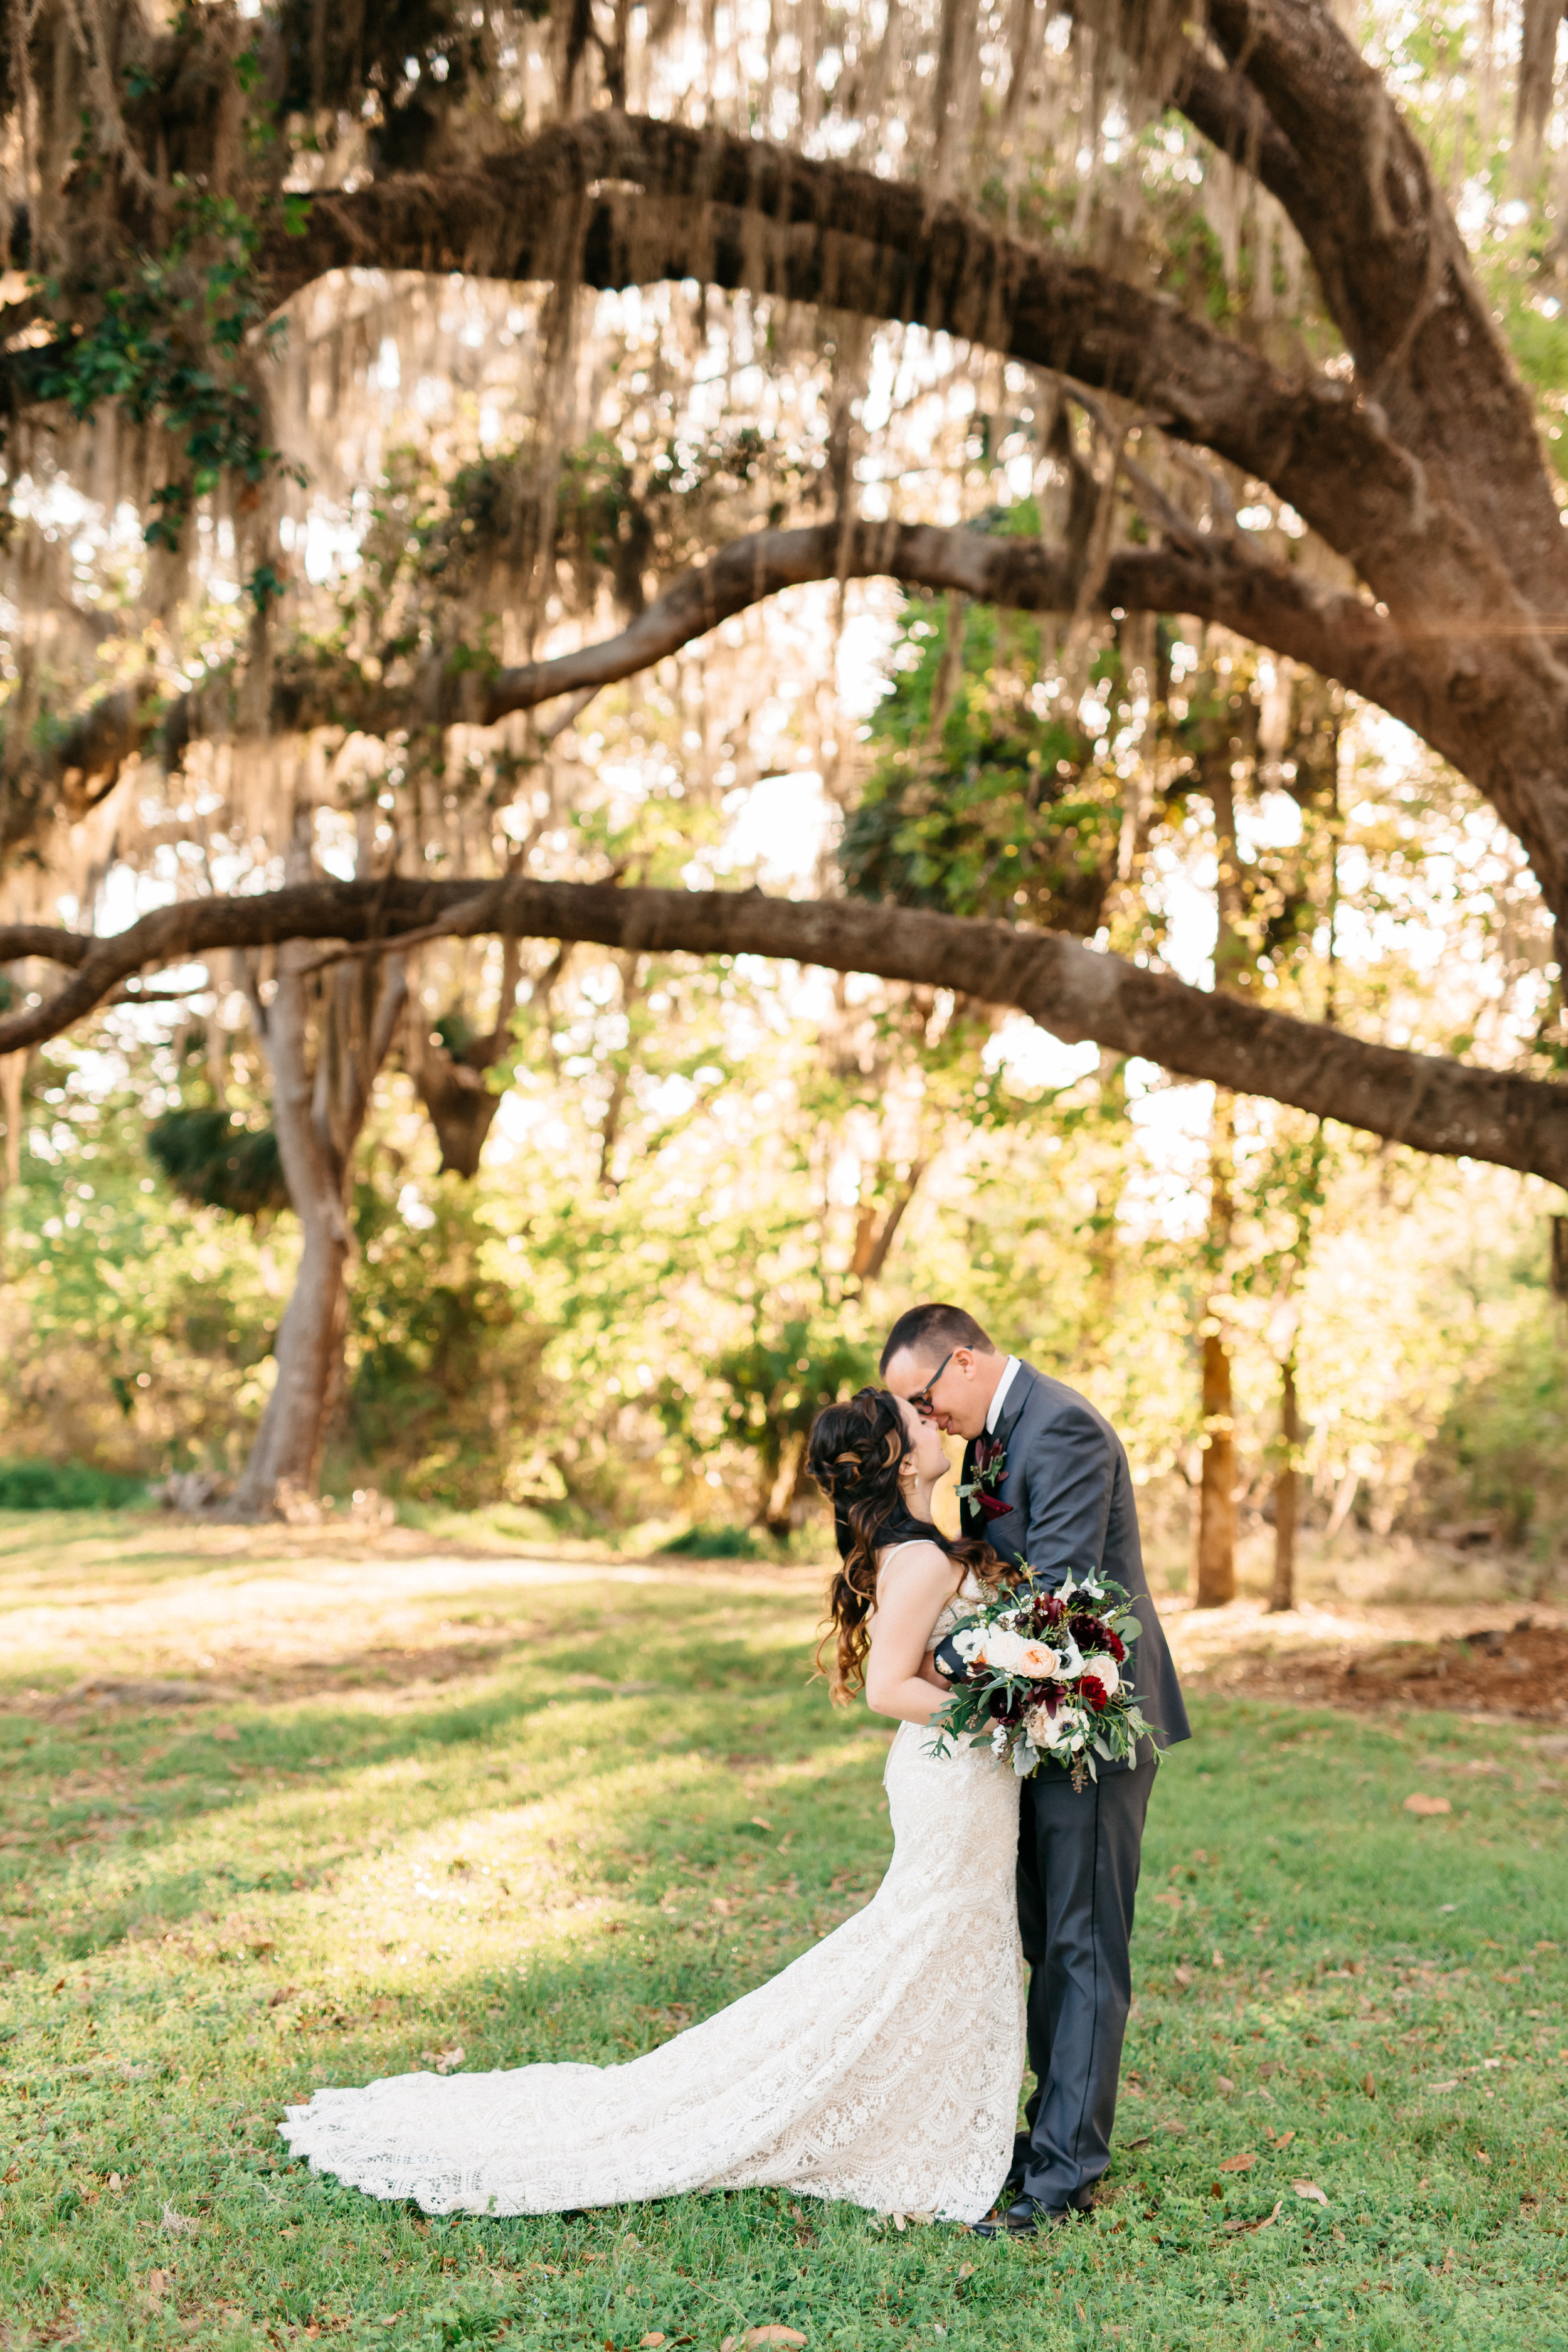 The newly weds share a kiss under the Cypress Tree, Bella Collina Weddings